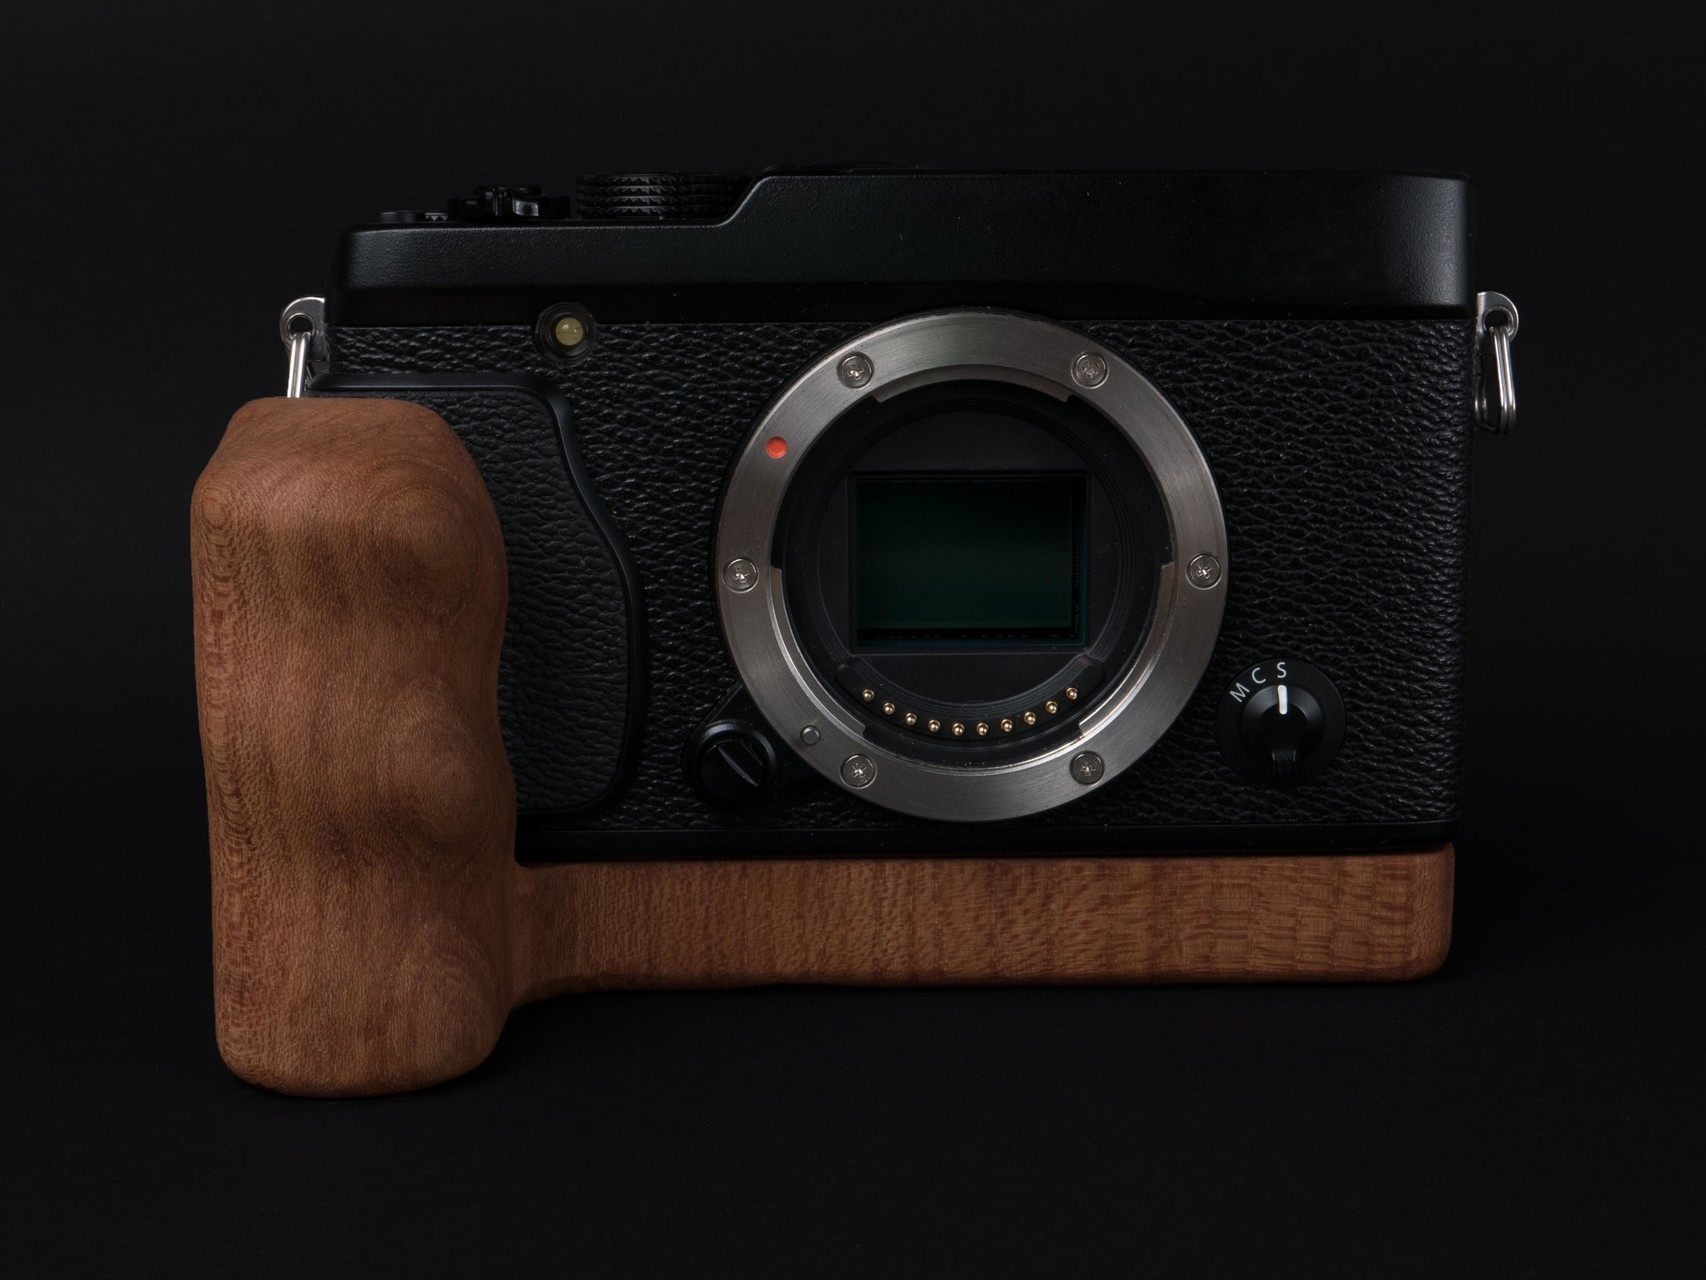 Fujifilm X-E1 with a Holzgriff